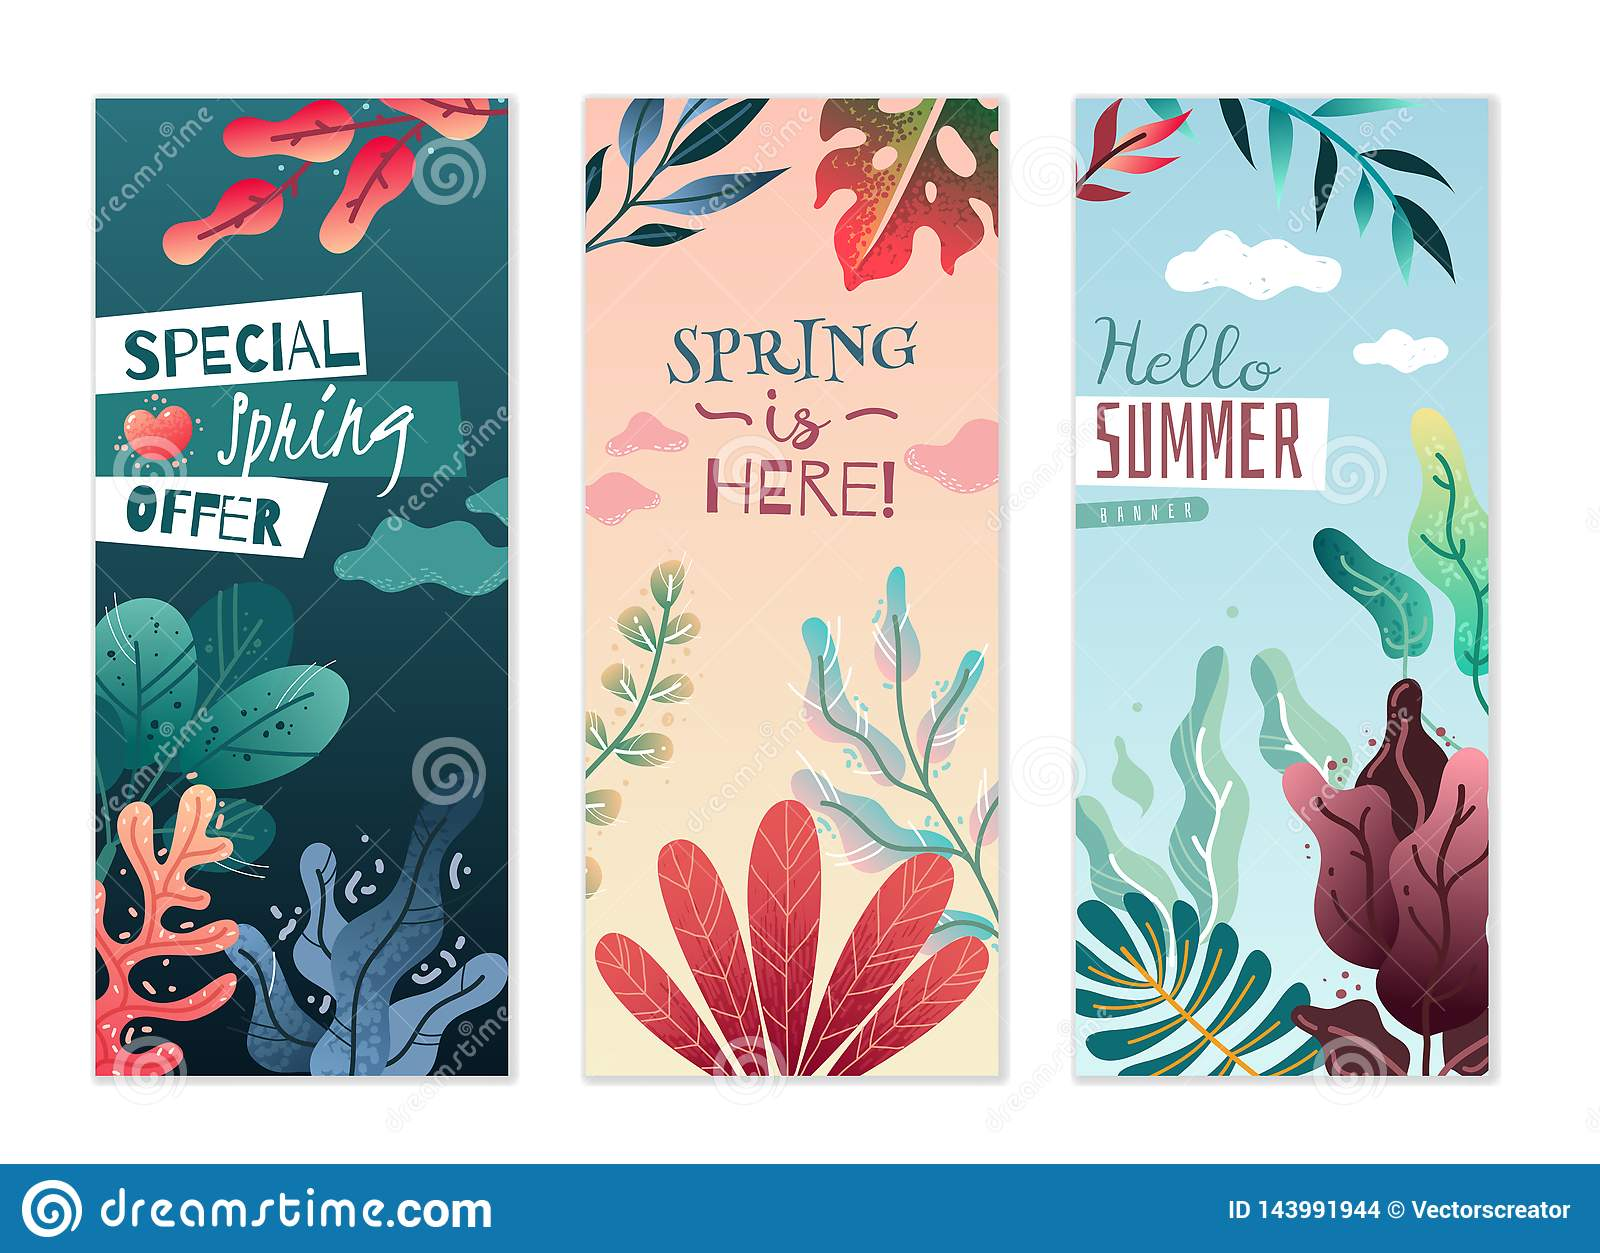 Spring summer decorative vertical banners. Pleasant colors and delicate gradients.